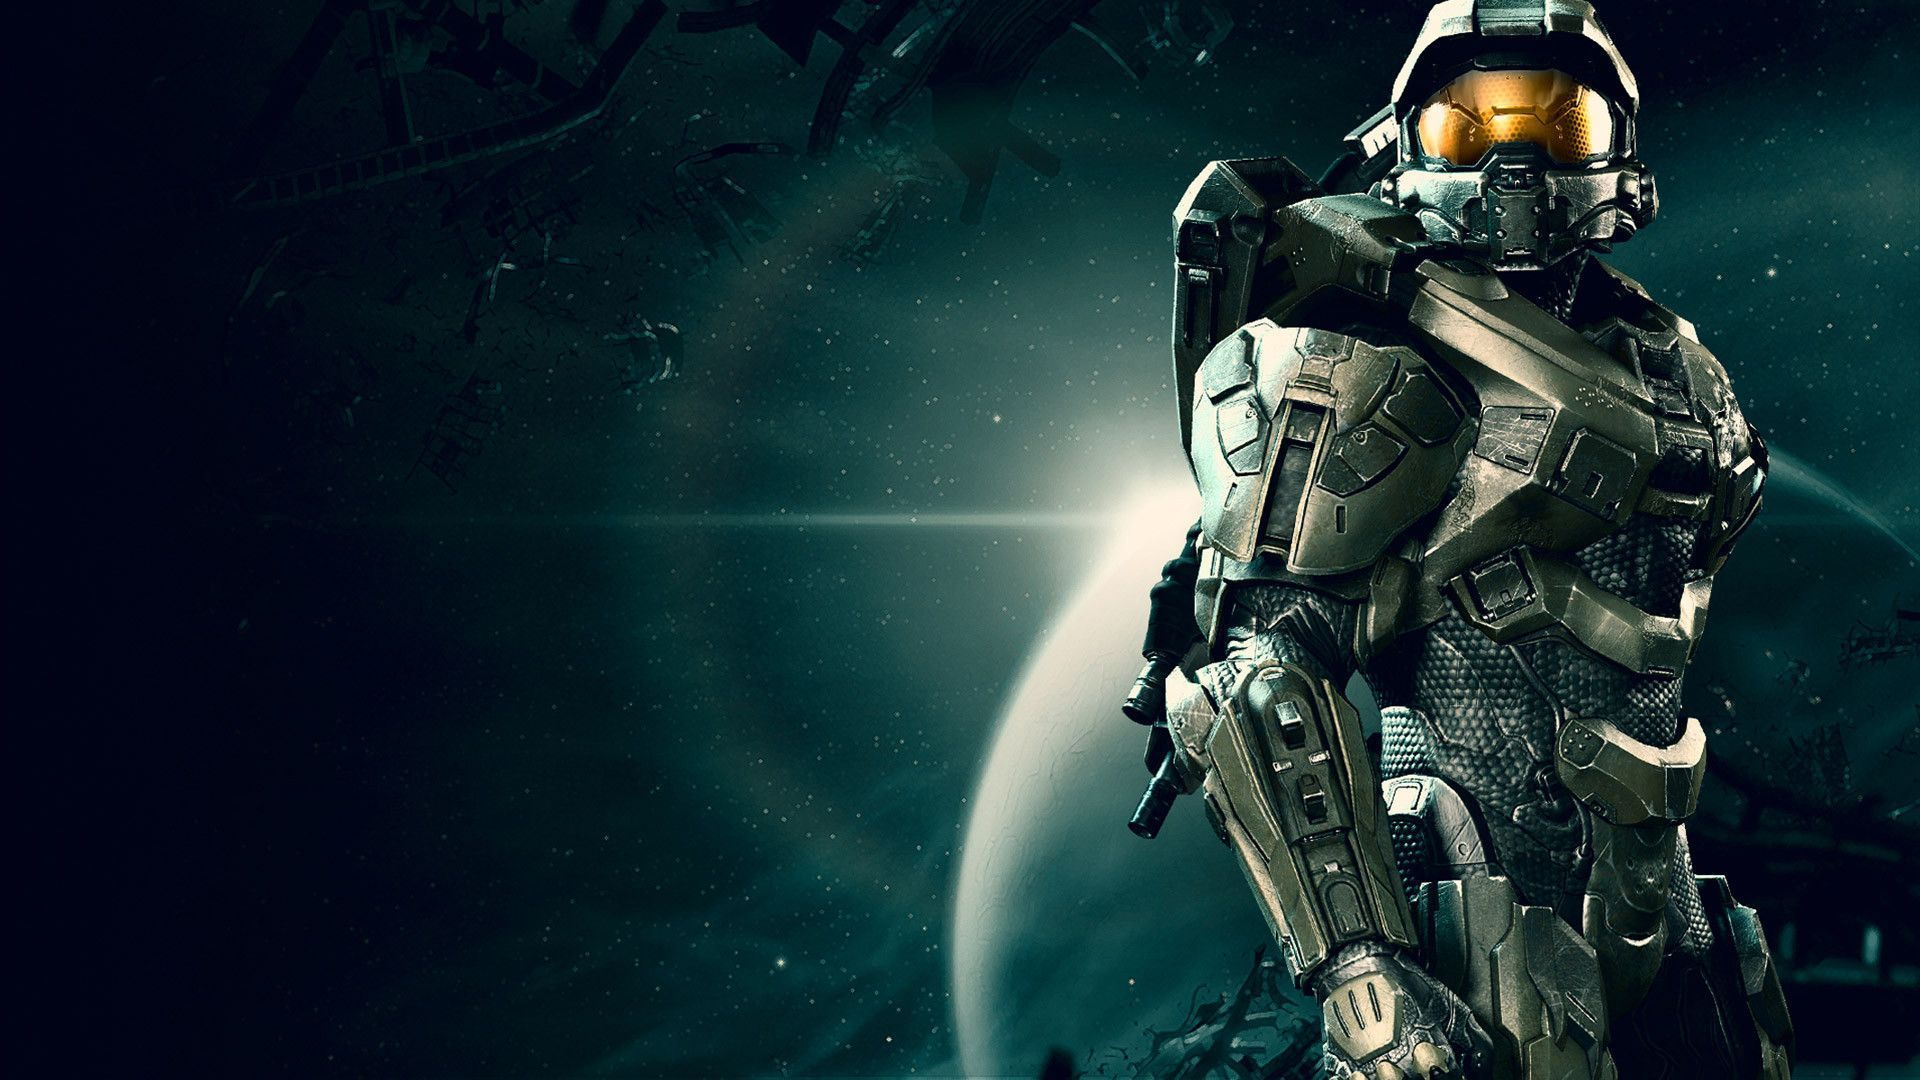 Master Chief Hd Wallpaper 1920x1080 Wallpaper Cave 0117